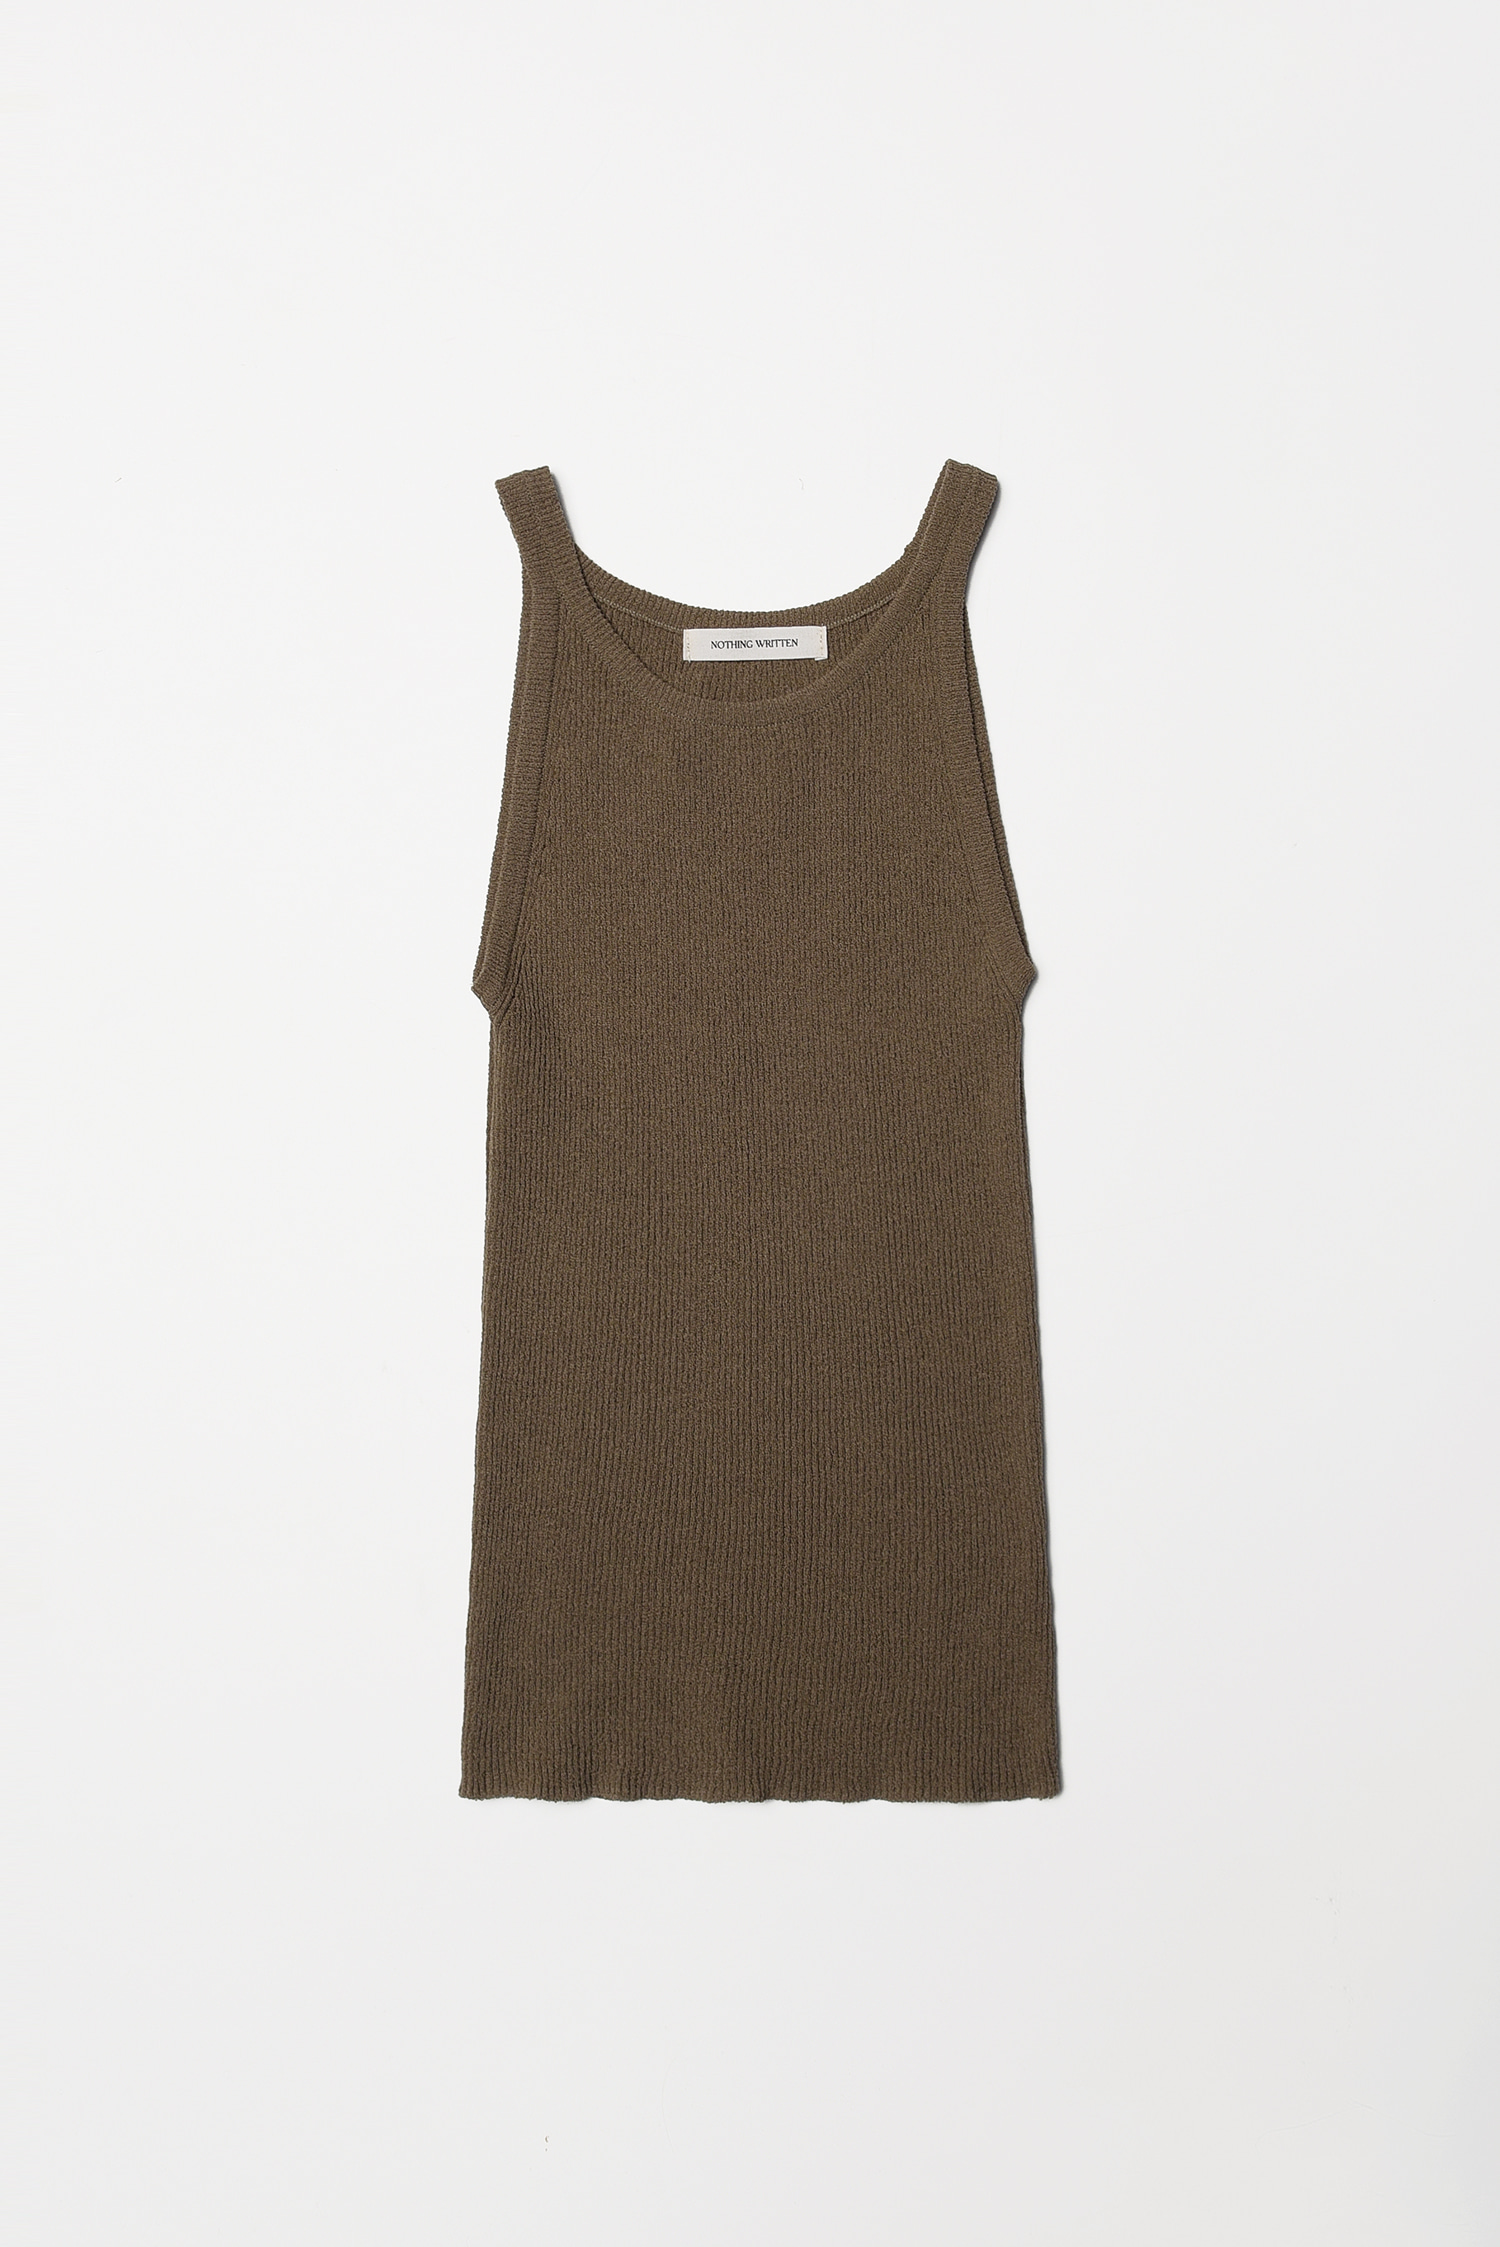 2RE-ORDER / Knit sleeveless (khaki)